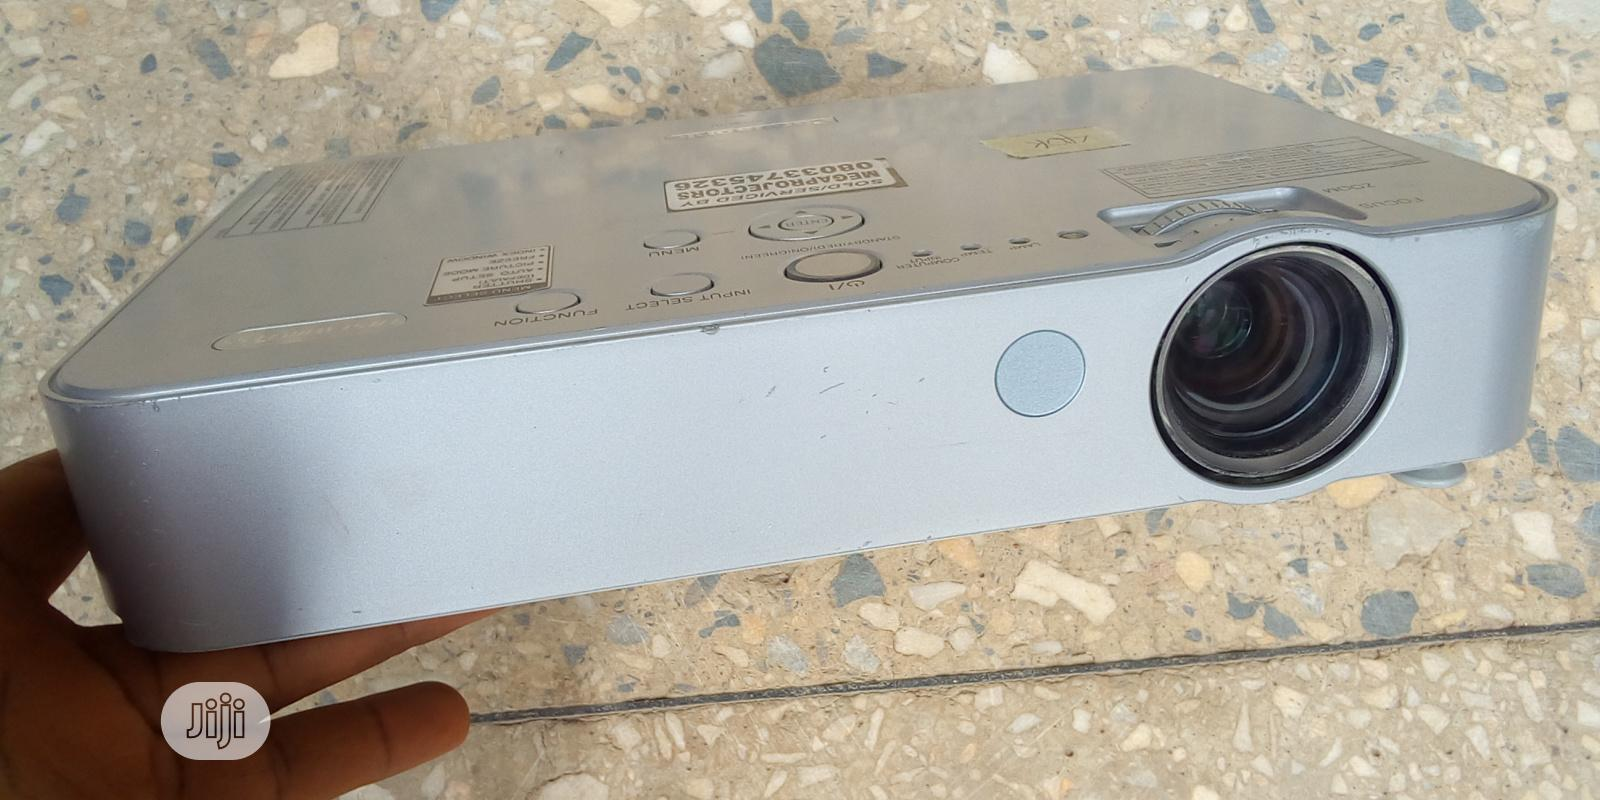 Cheapest Projector